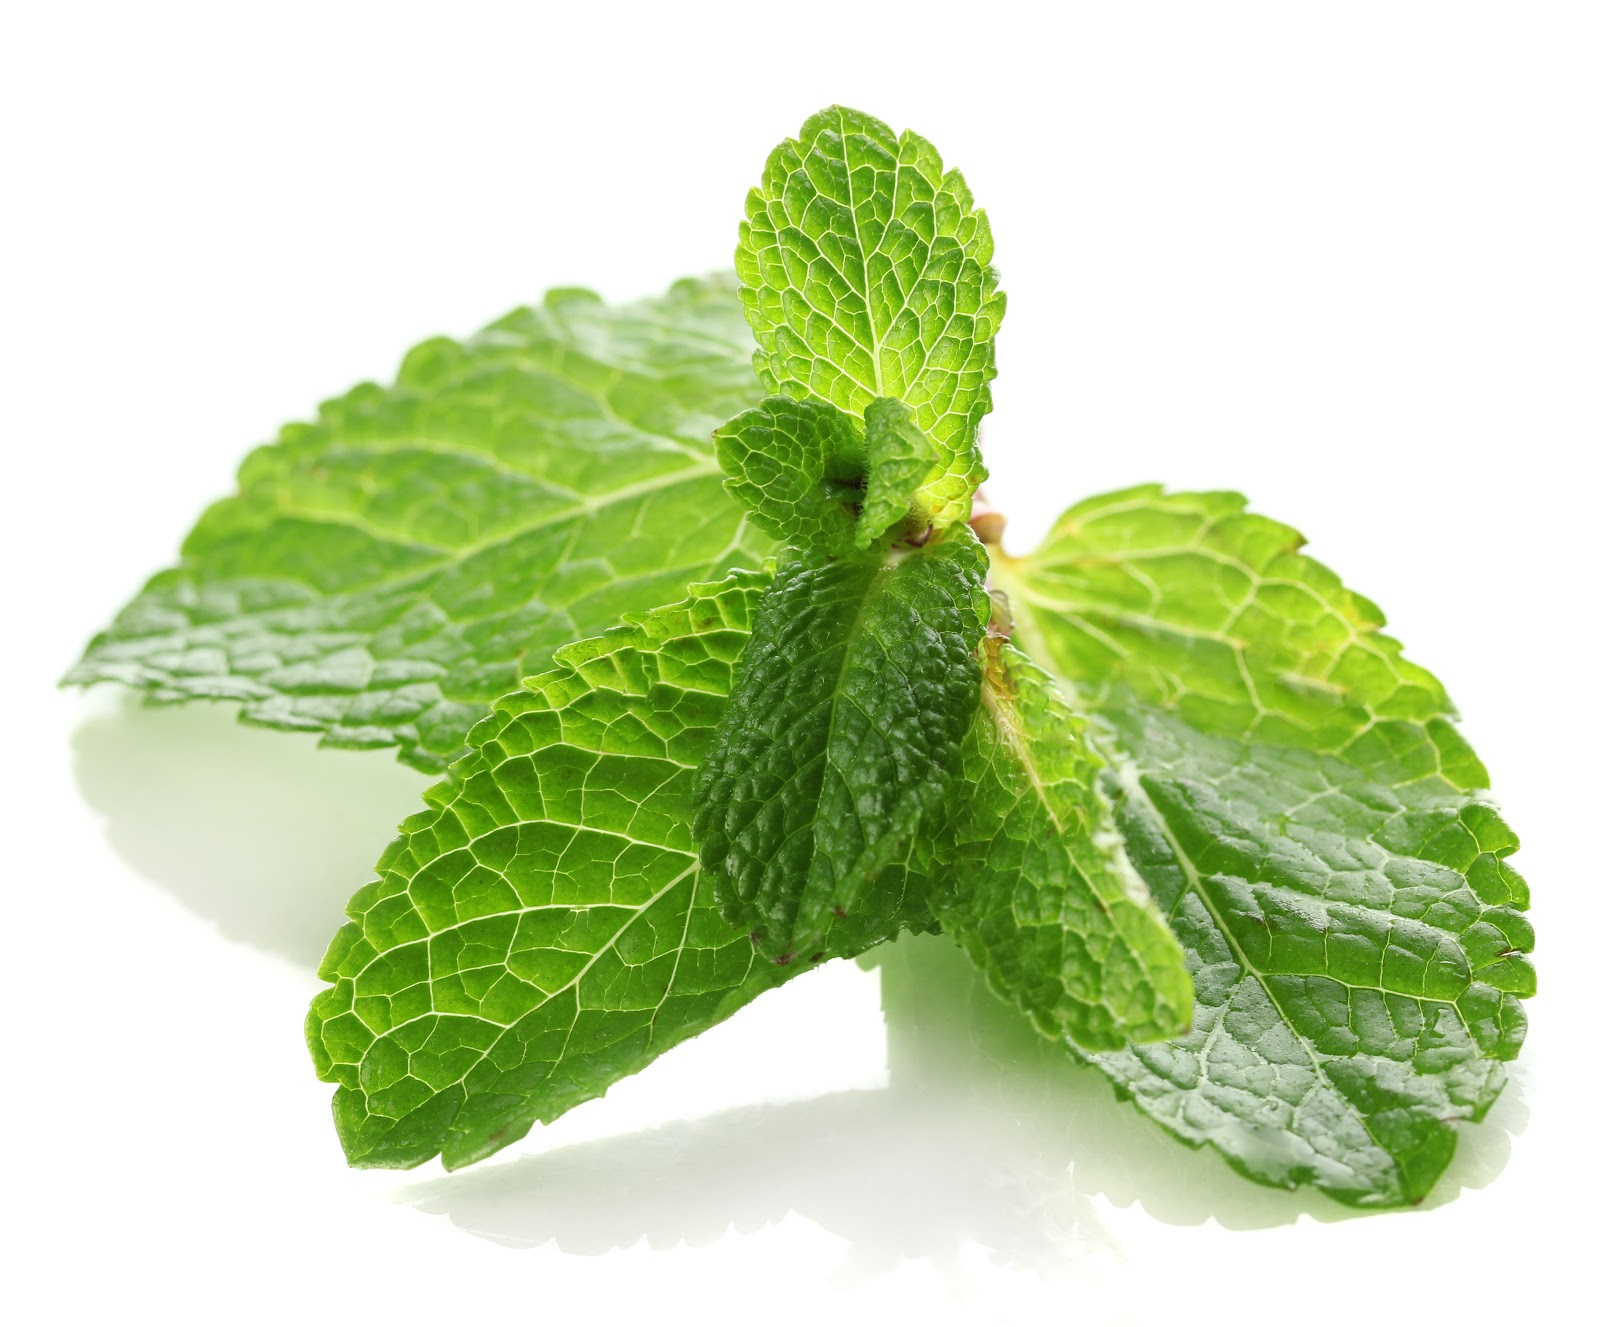 Http Healthyplate5 Blogspot Com 2013 04 Medicinal Uses Of Mint Html